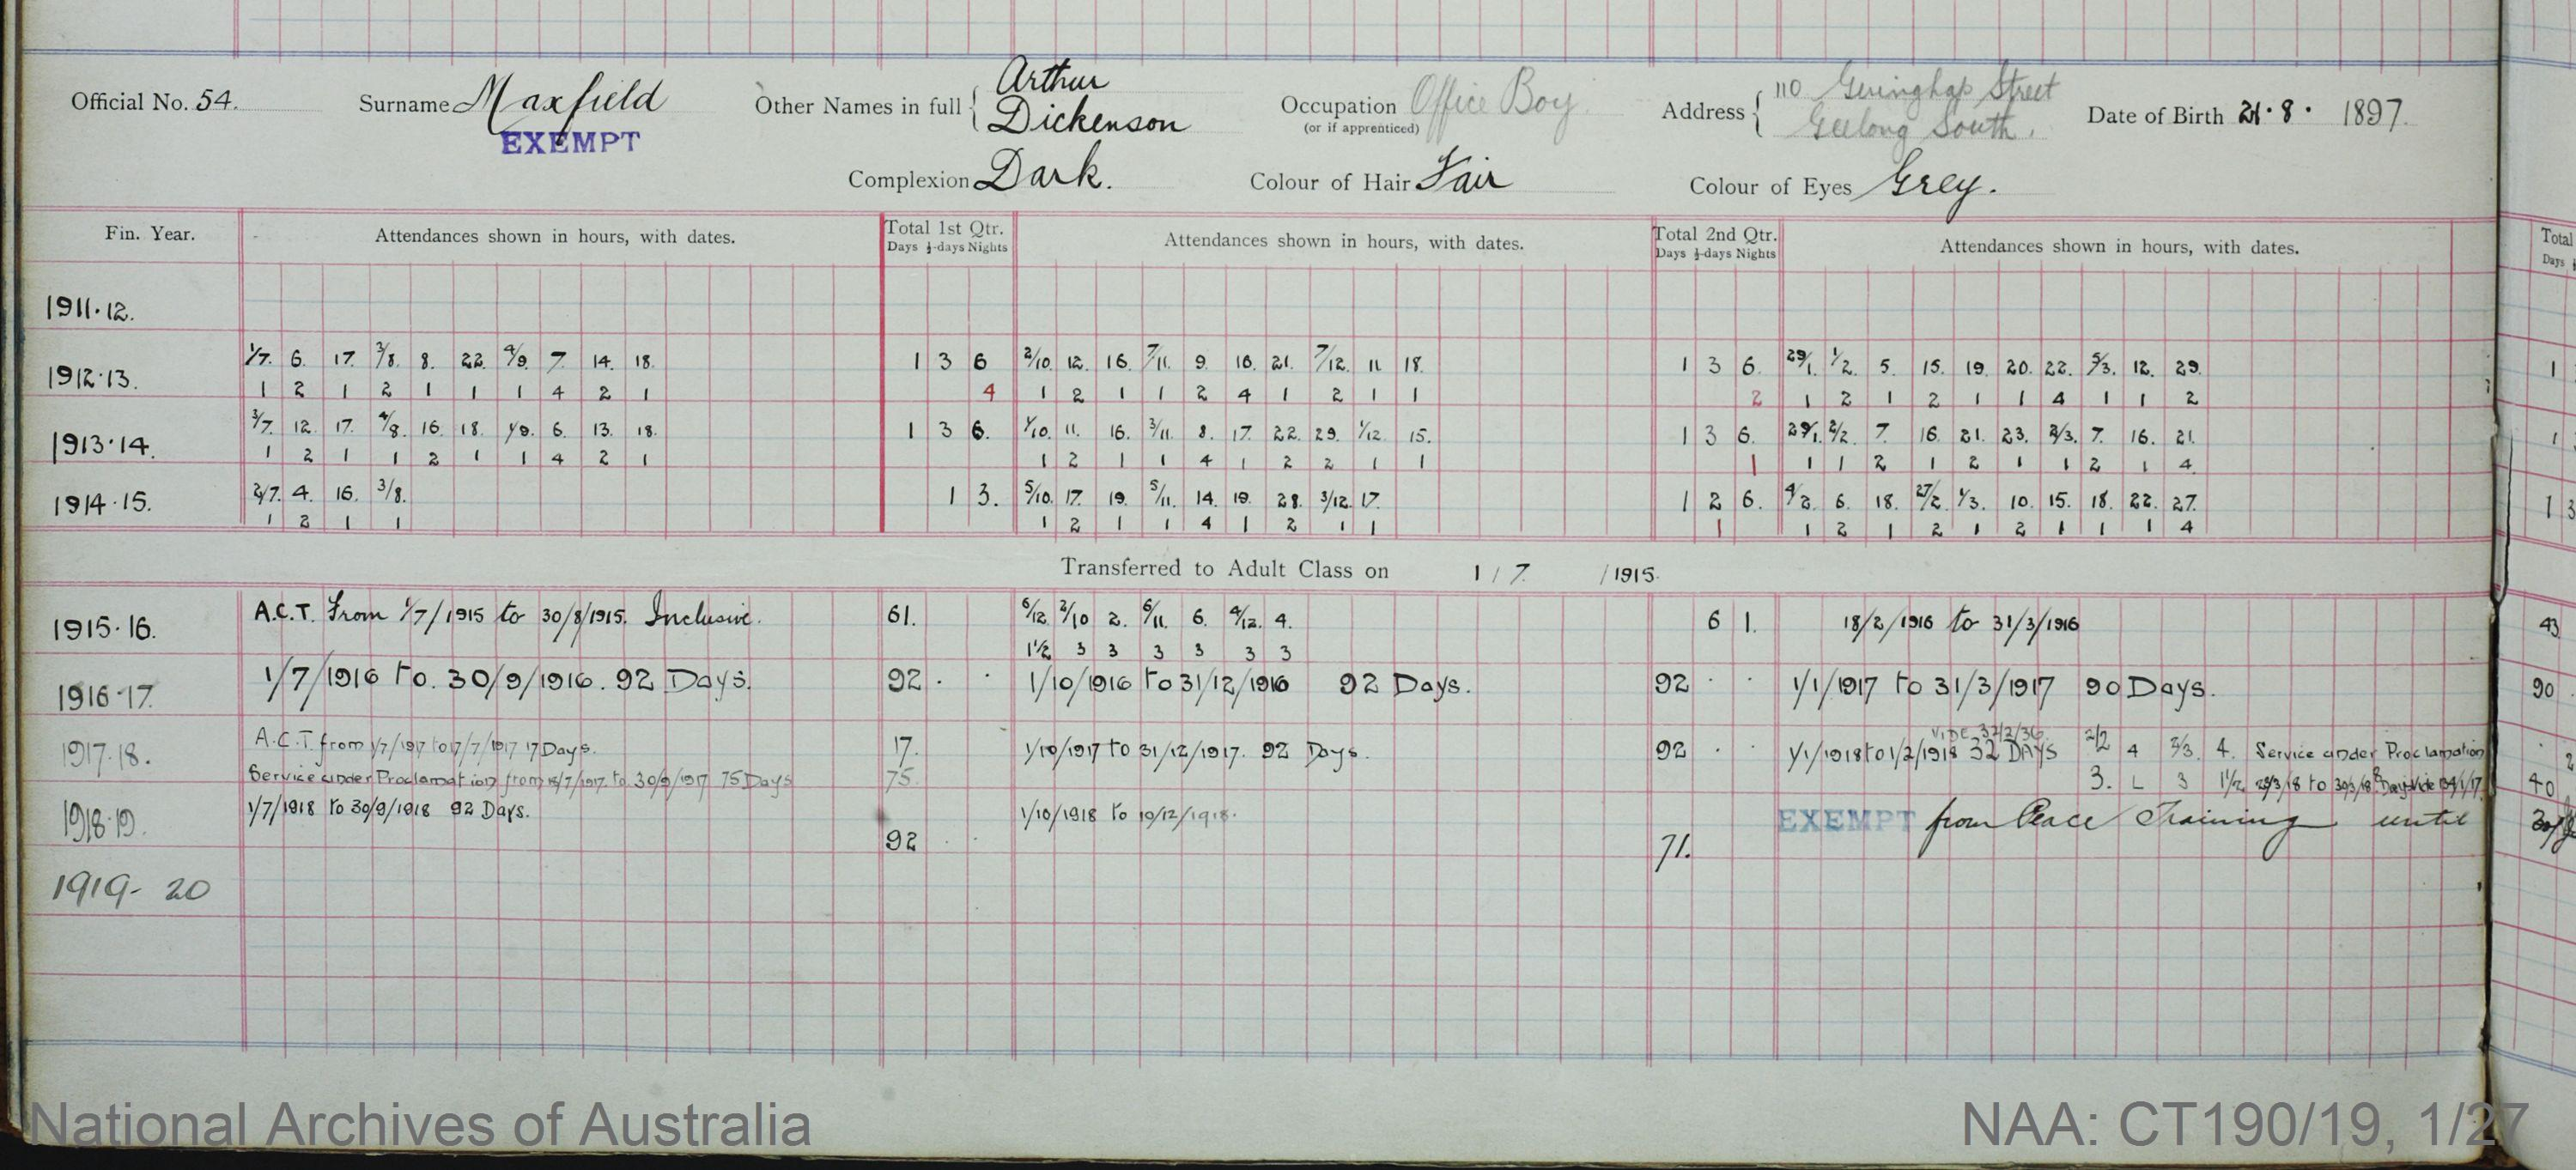 SURNAME - MAXFIELD;  GIVEN NAME(S) - Arthur Dickenson;  OFFICIAL NUMBER - 54;  DATE OF BIRTH - 21 August 1897;  PLACE OF BIRTH - [Unknown];  NEXT OF KIN - [Unknown] ;  SERVICE/STATION - Geelong;  REGISTRATION DATE - 31 January 1911